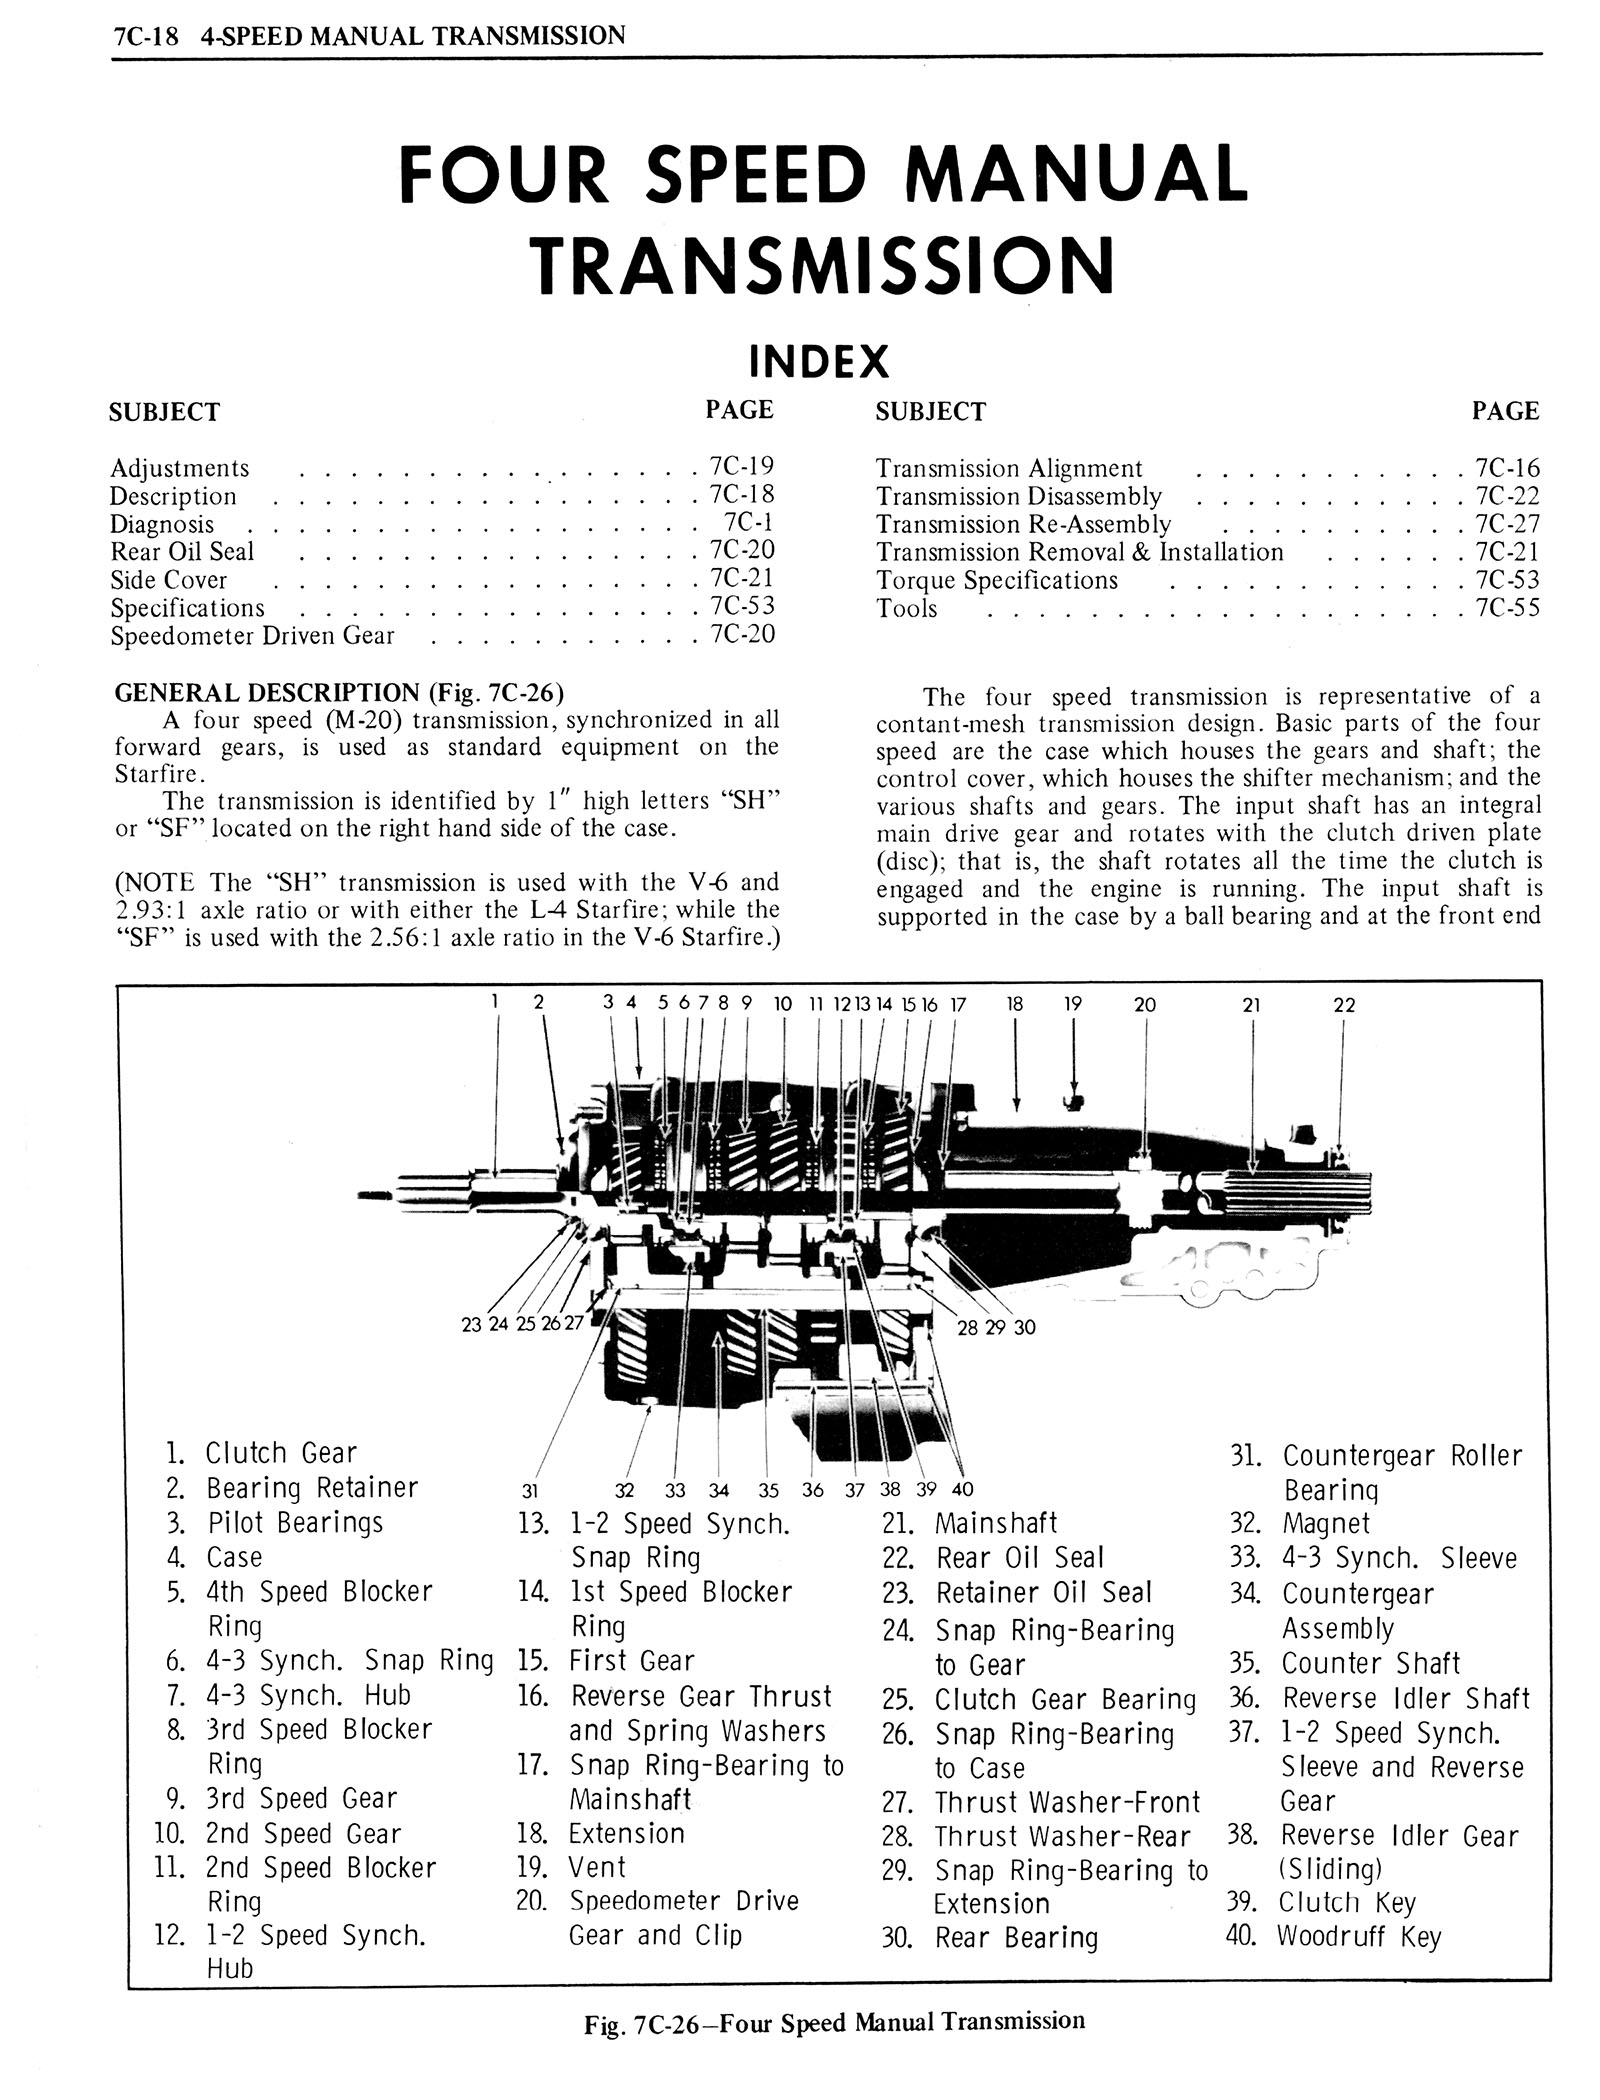 1976 Oldsmobile Service Manual page 890 of 1390